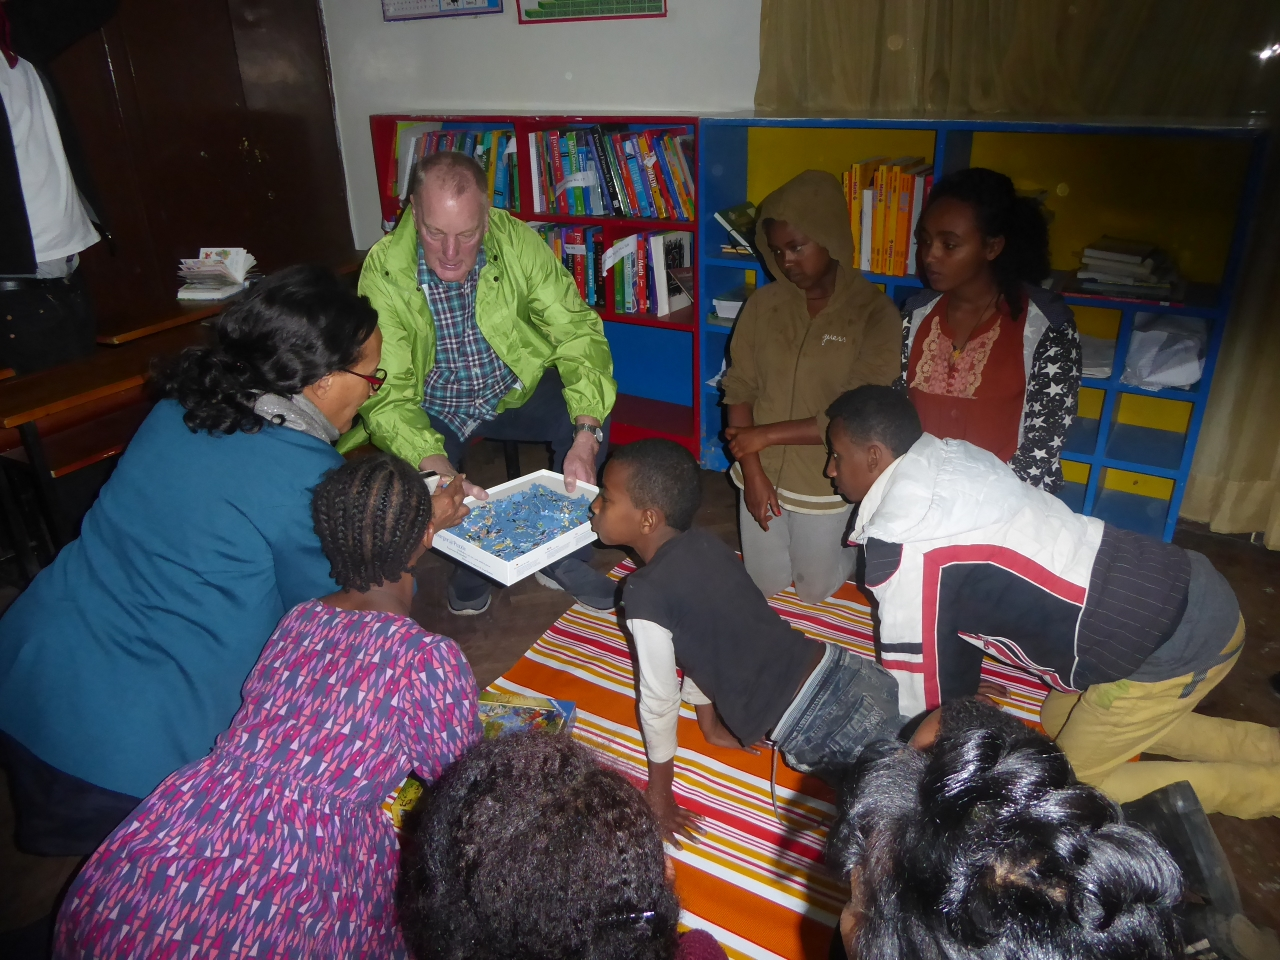 George showing the children at BHE puzzles and board games